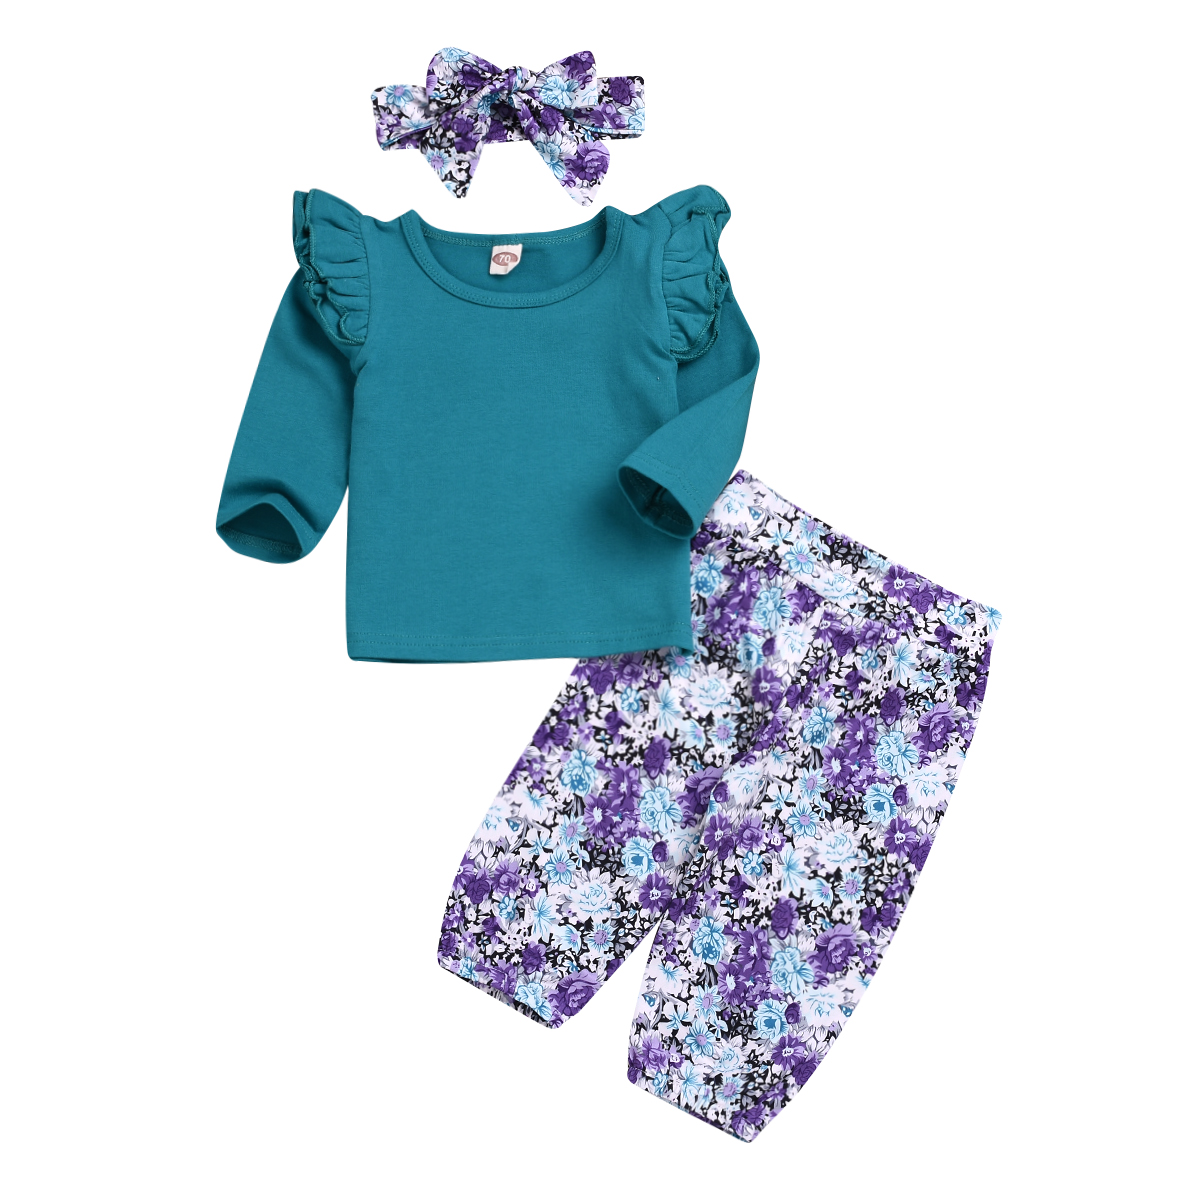 3Pcs Set Baby Girls Floral Print Tops Ruffled Pants Headband Autumn Outfits Suit